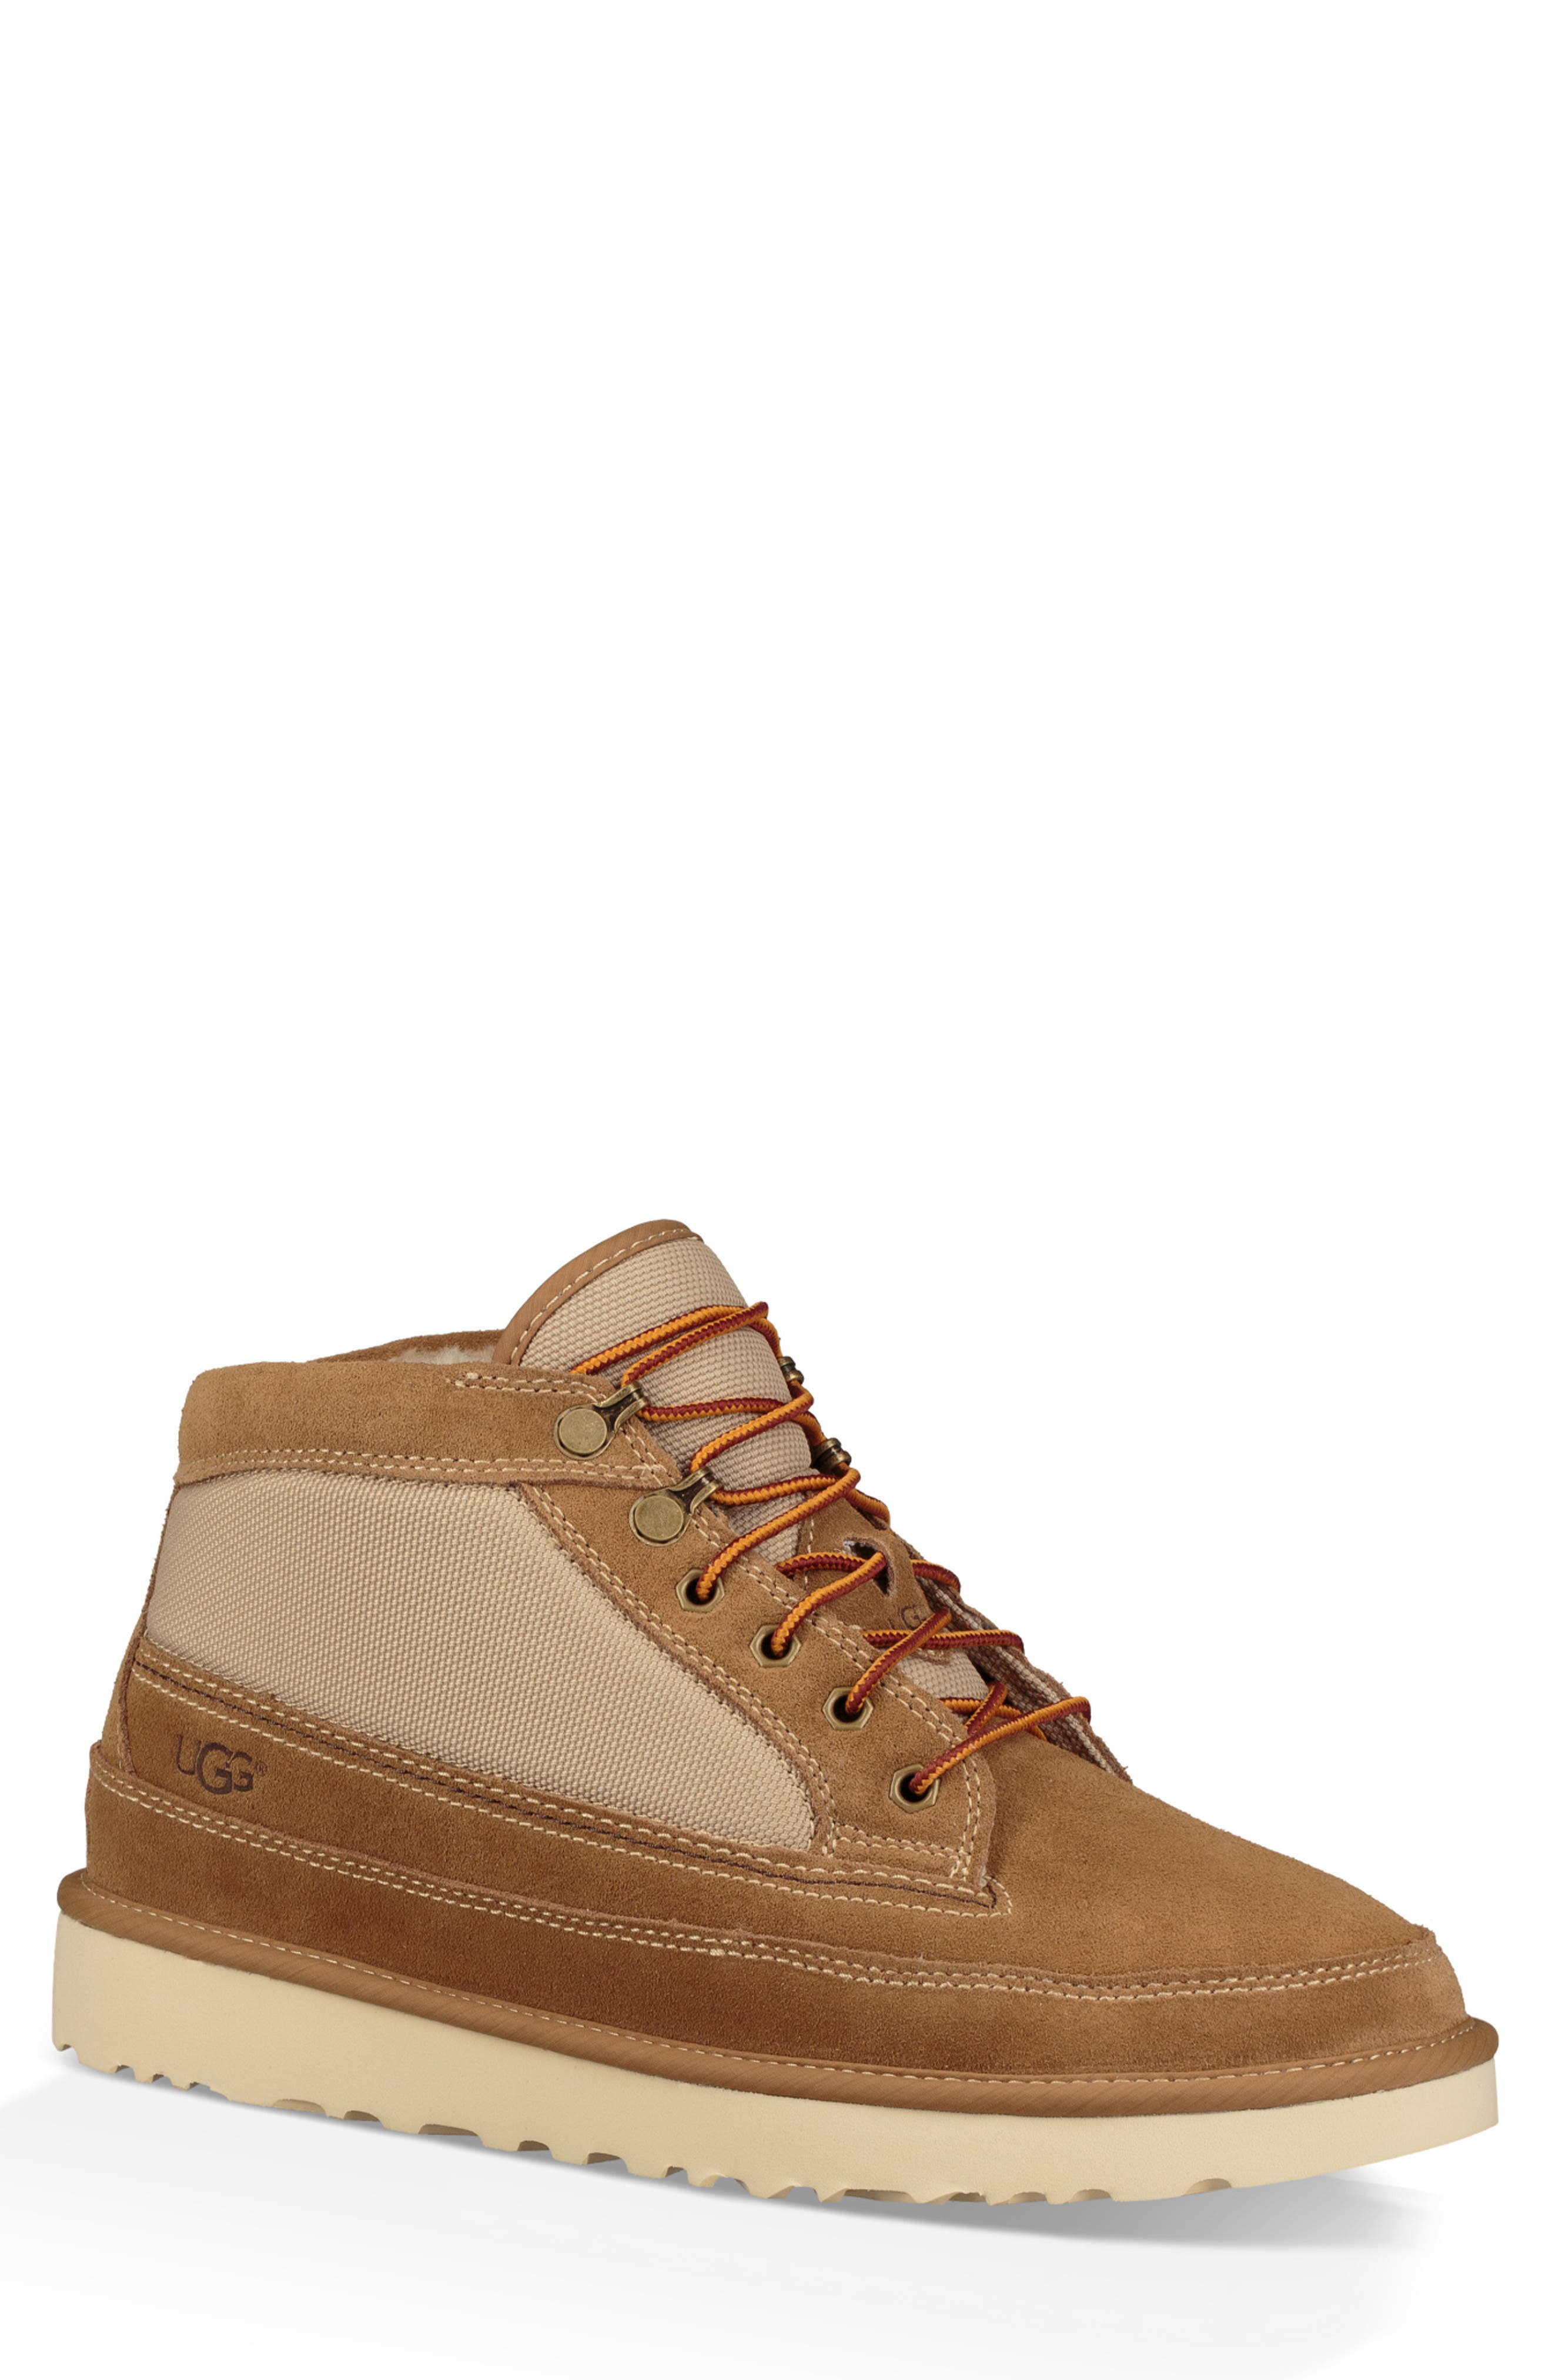 Highland Field Boot,                             Main thumbnail 1, color,                             CHESTNUT